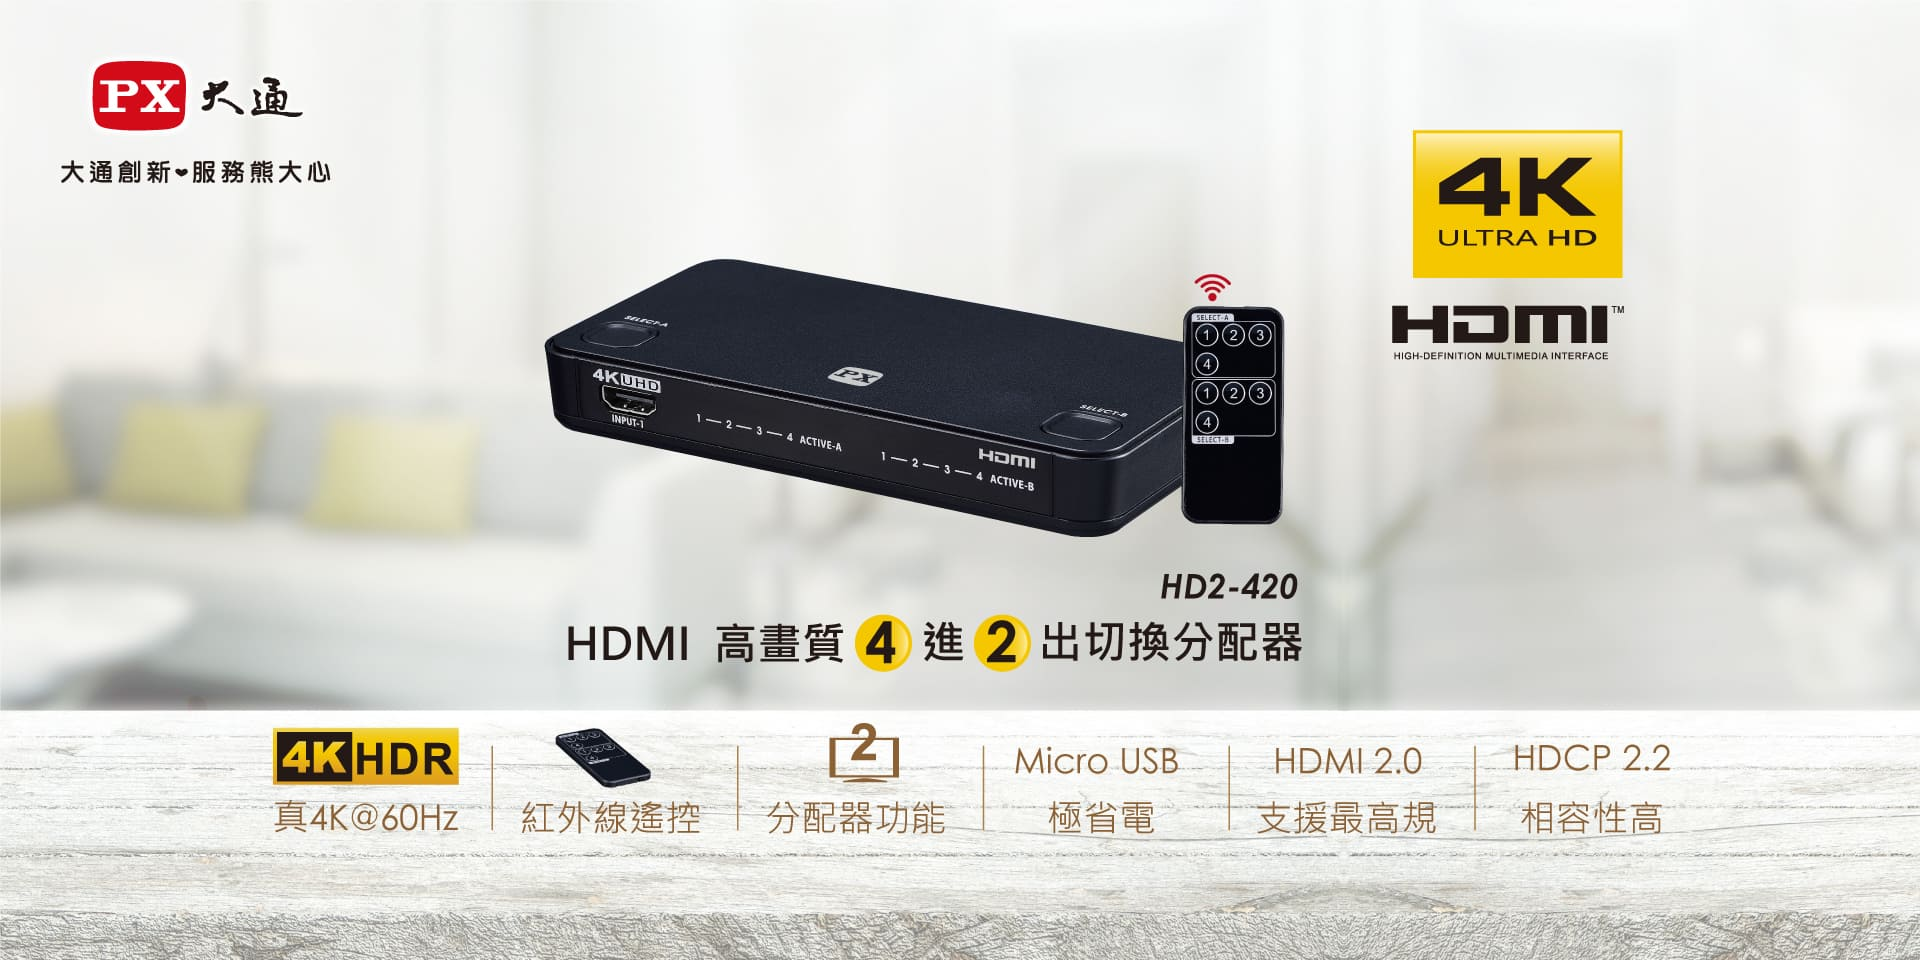 proimages/product/HDMI/HD2-420/HD2-420_01.jpg